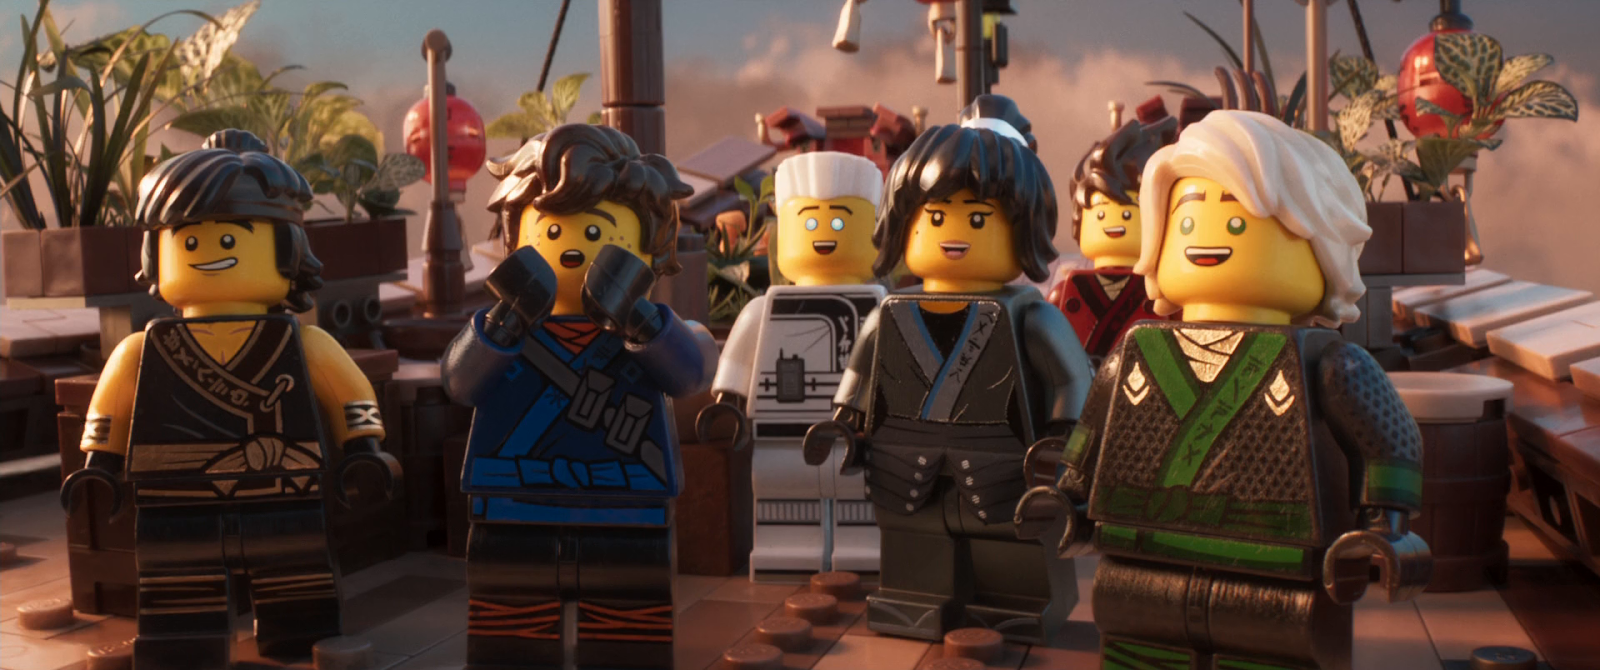 Lego Ninjago: La película (2017) BRRip 1080p Latino - Ingles captura 4